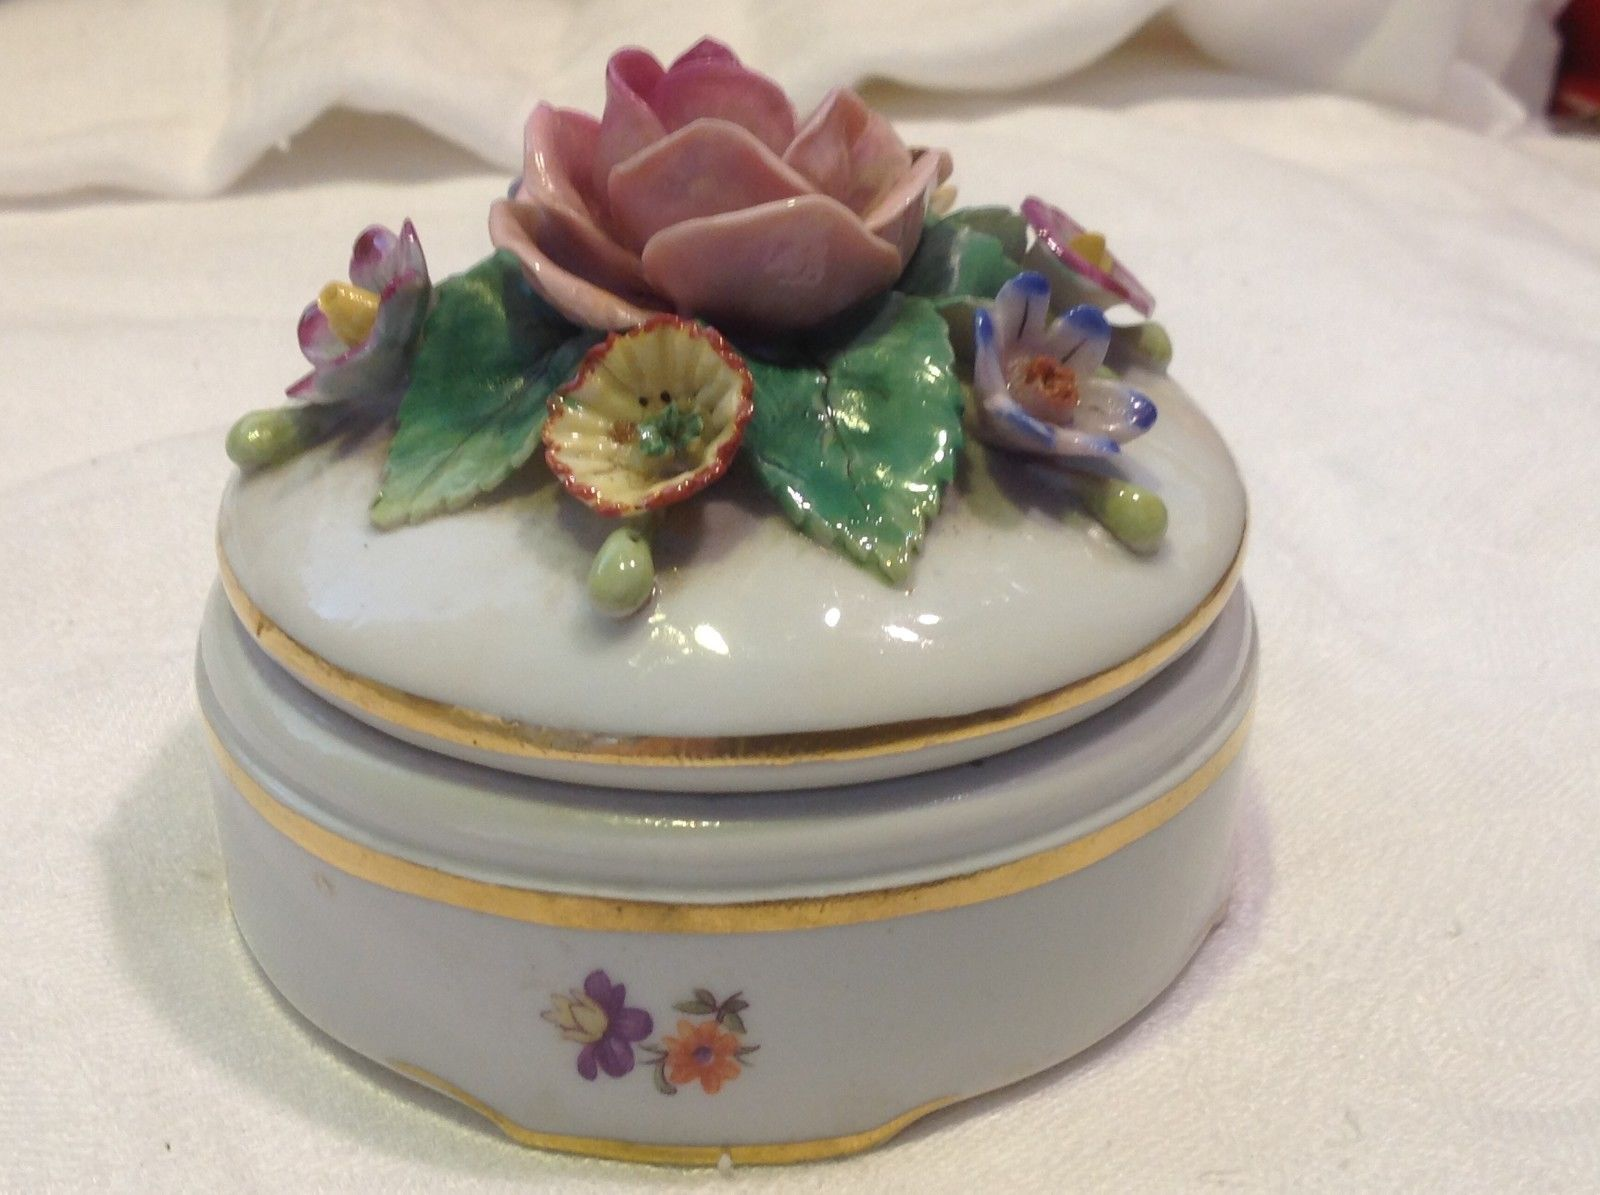 Vintage floral porcelain trinket box presumed Staffordshire